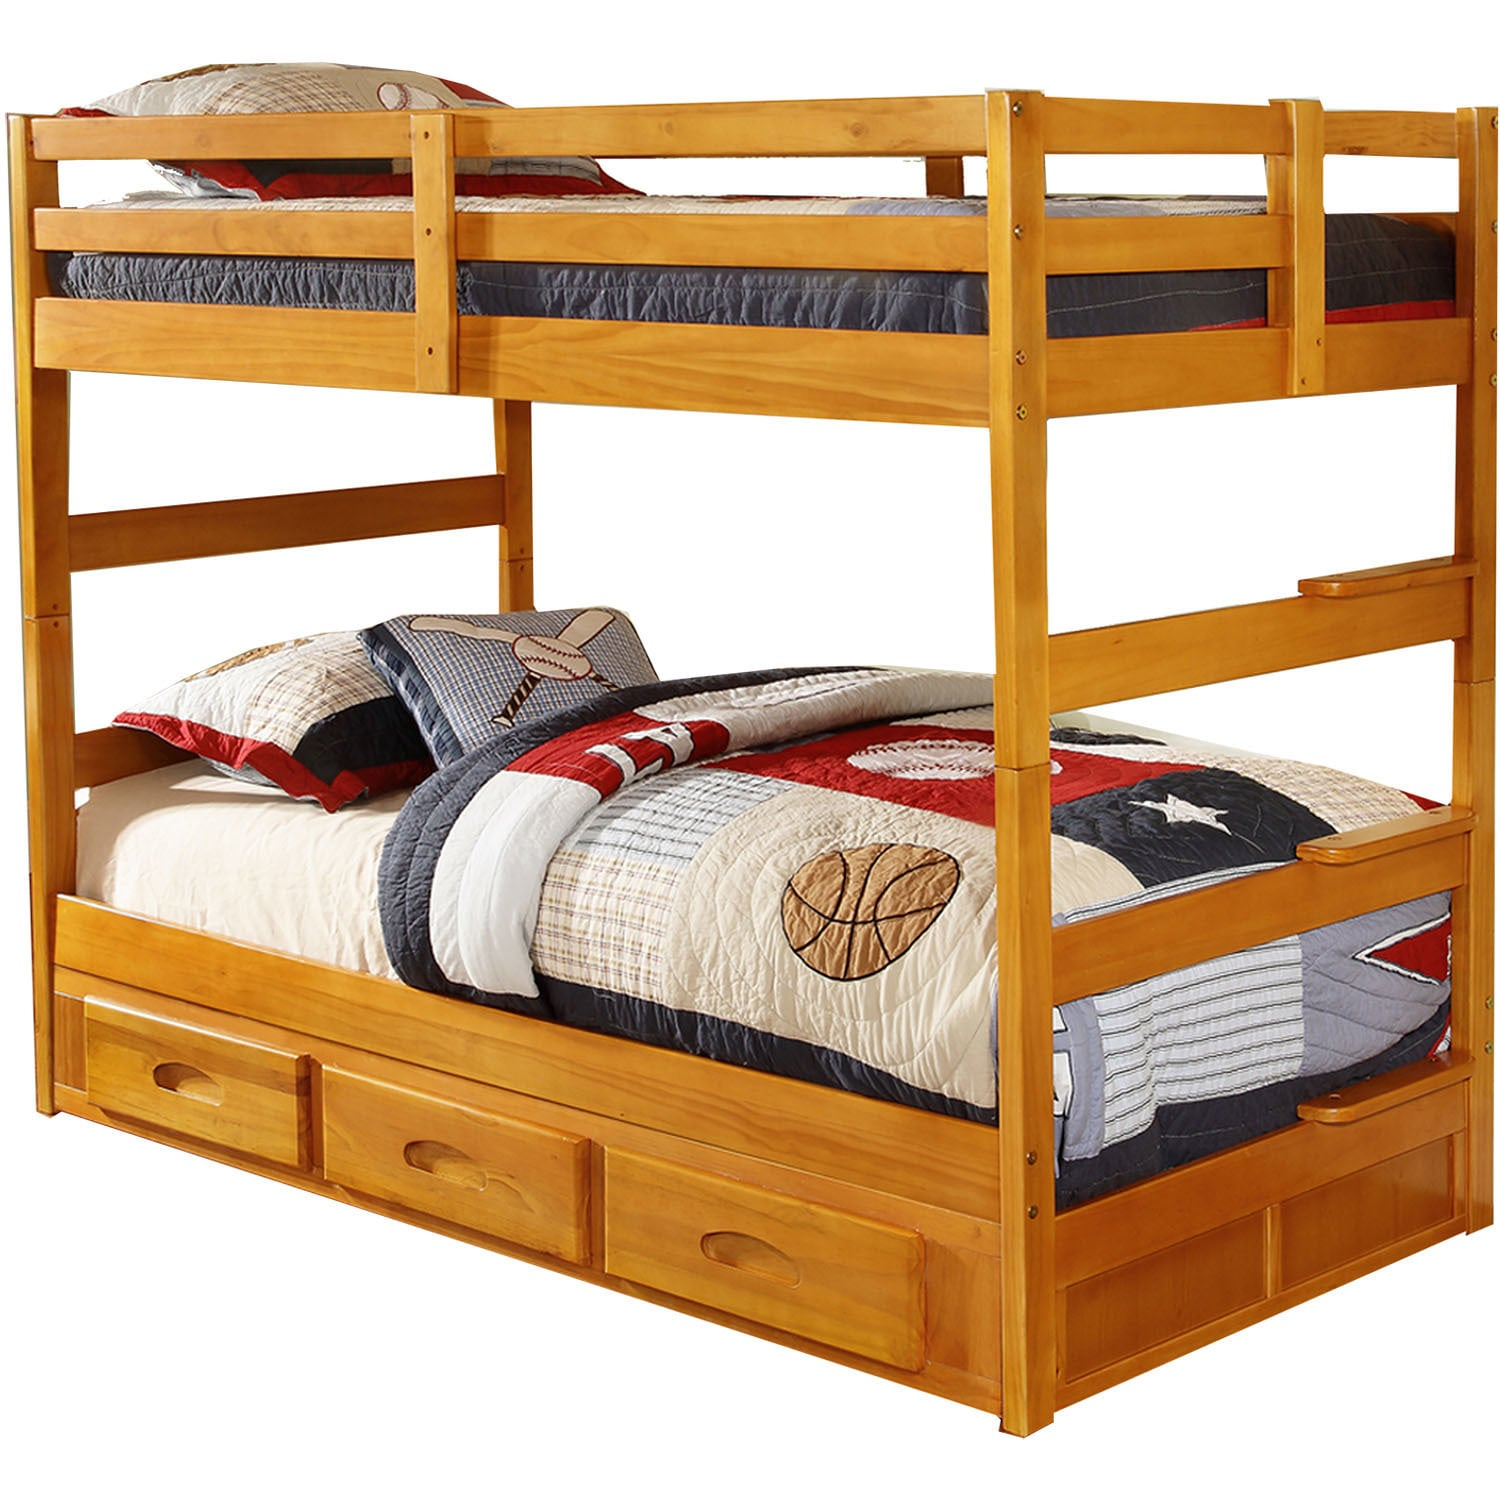 Cambridge Grant Twin-over-twin Bunk Bed With Slide-out Tr...